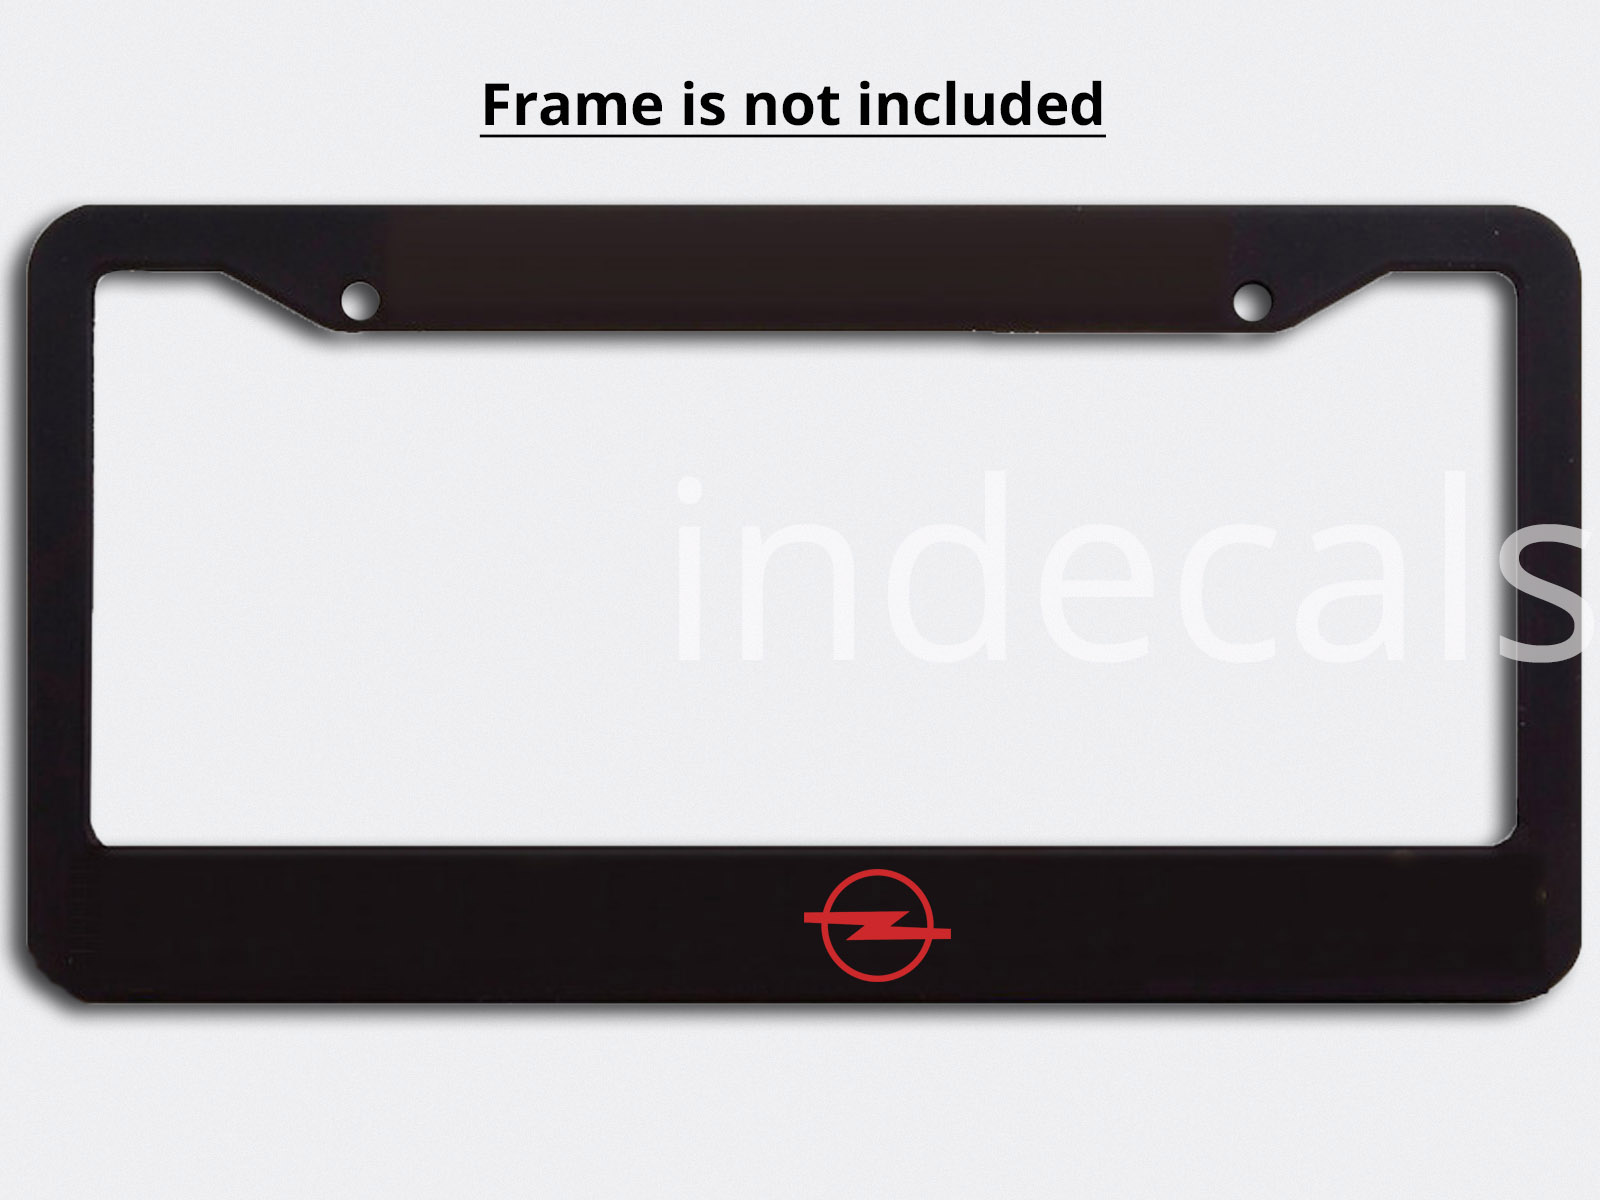 3 x Opel Stickers for License Plate Frame - Red